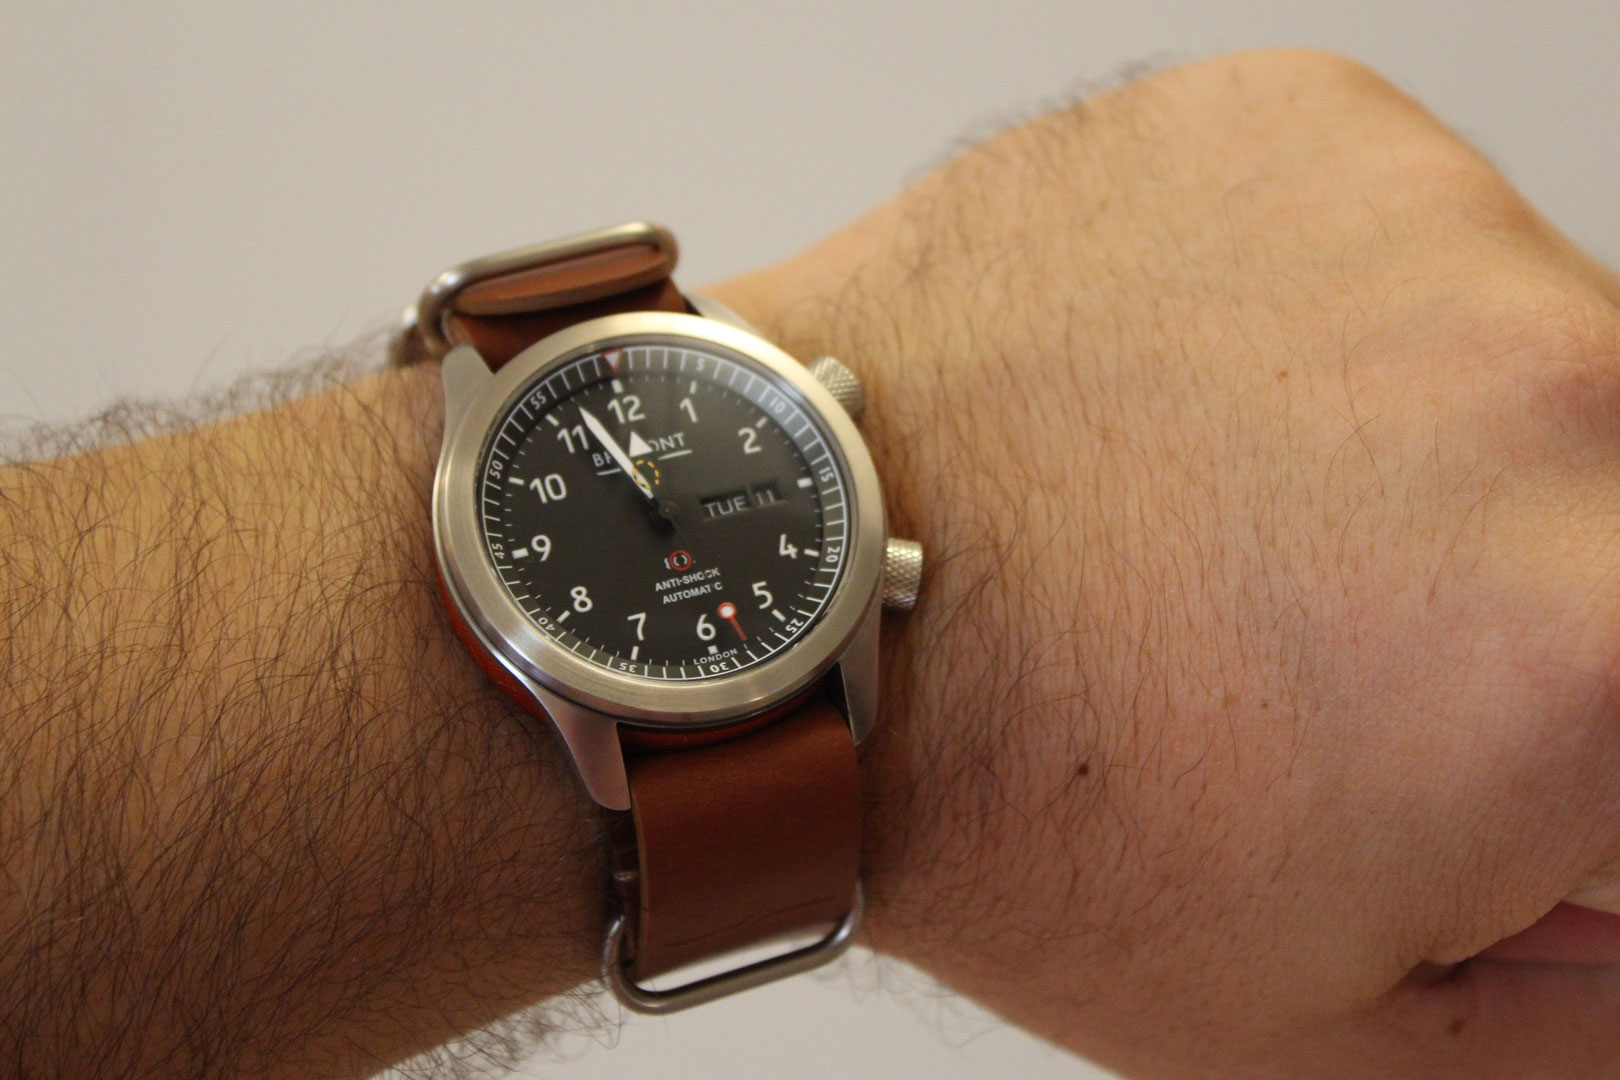 Bremont MBII on-wrist